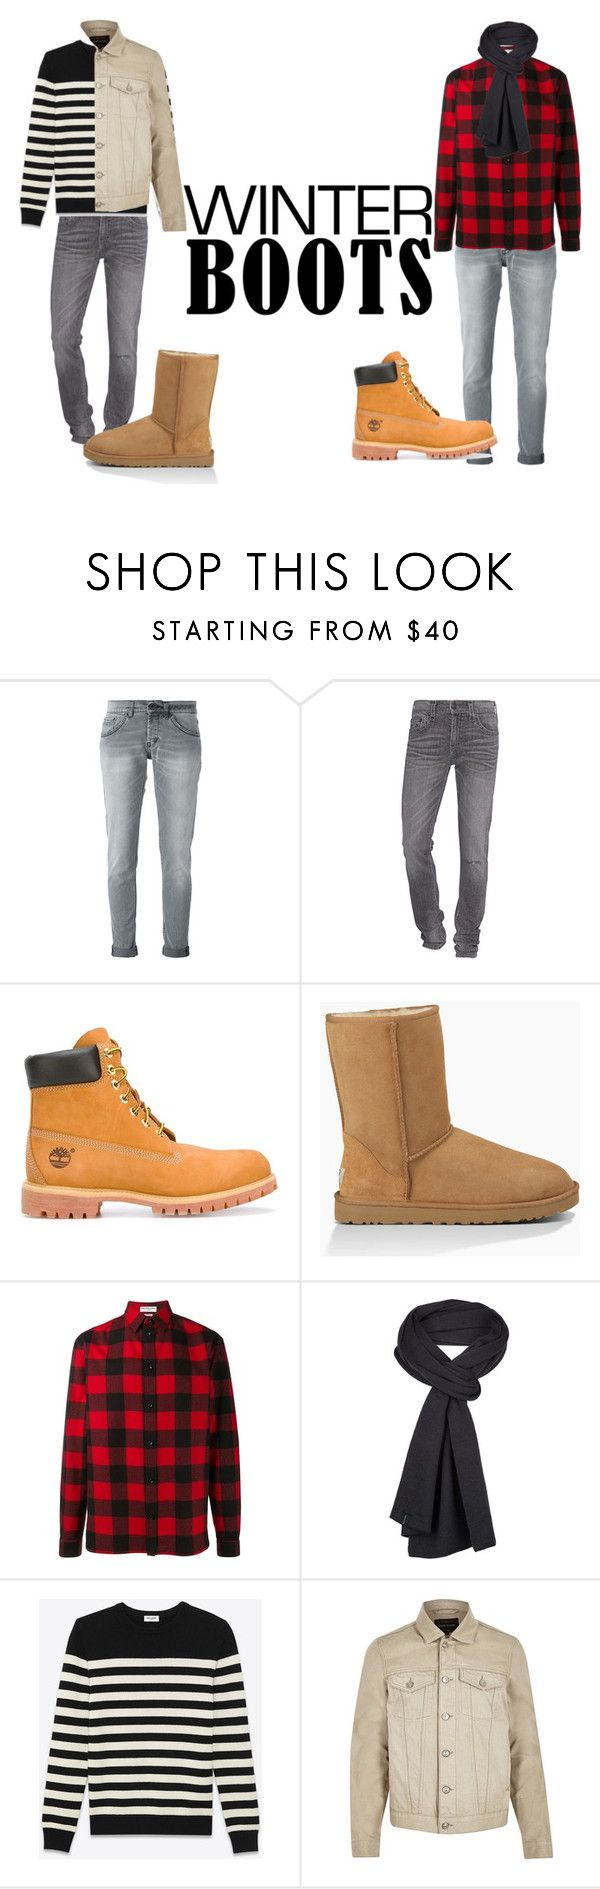 """Winter Boots~"" by sconesareawesome-iggybrows on Polyvore featuring Dondup, True Religion, Timberland, UGG Australia, Balenciaga, prAna, Yves Saint Laurent, River Island, men's fashion and menswear"